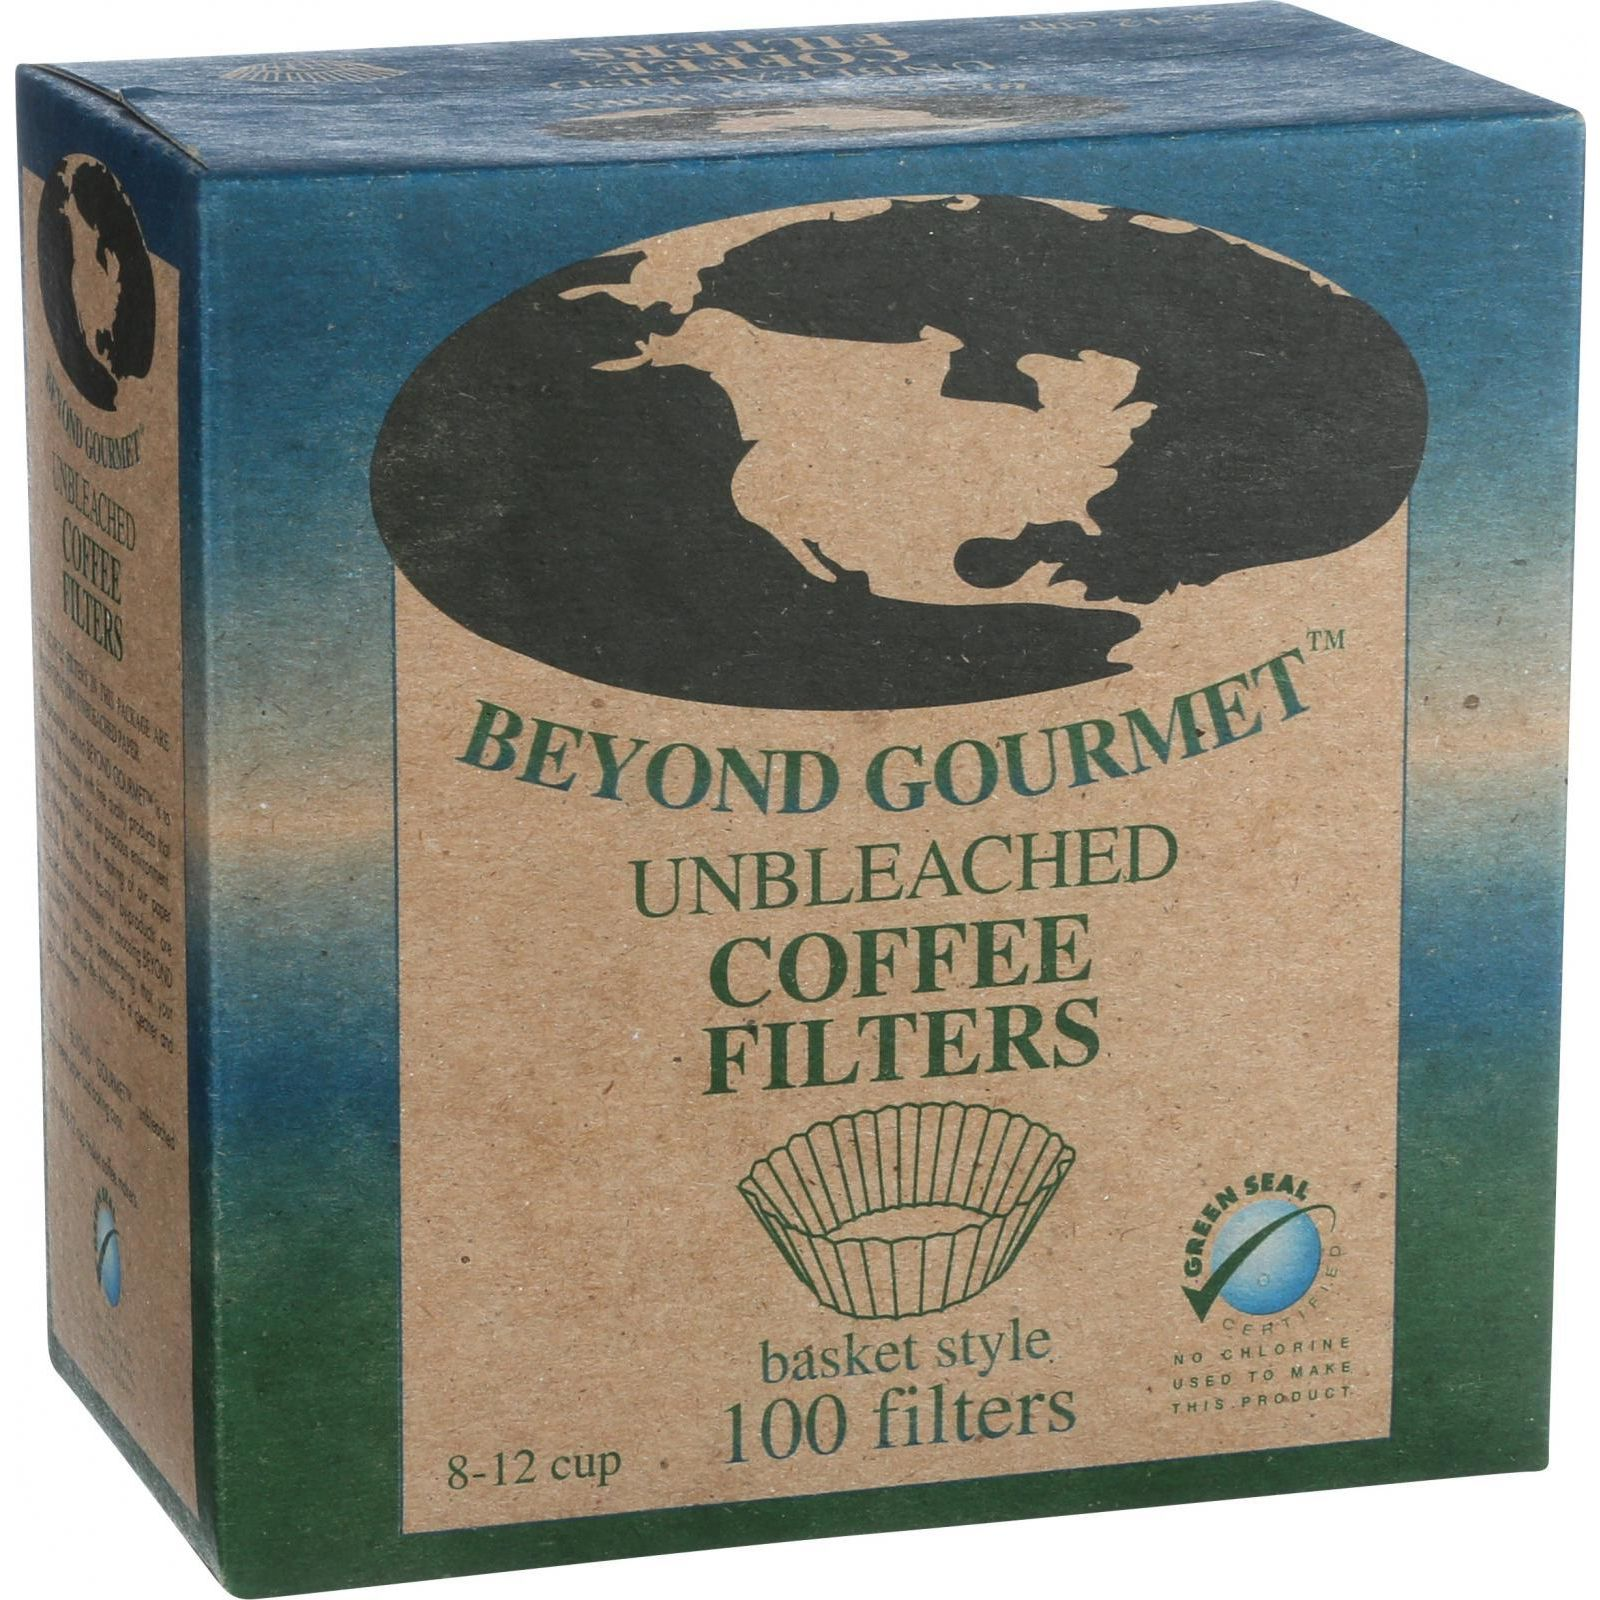 Beyond Gourmet Coffee Filters - Basket - Unbleached - 100 Count